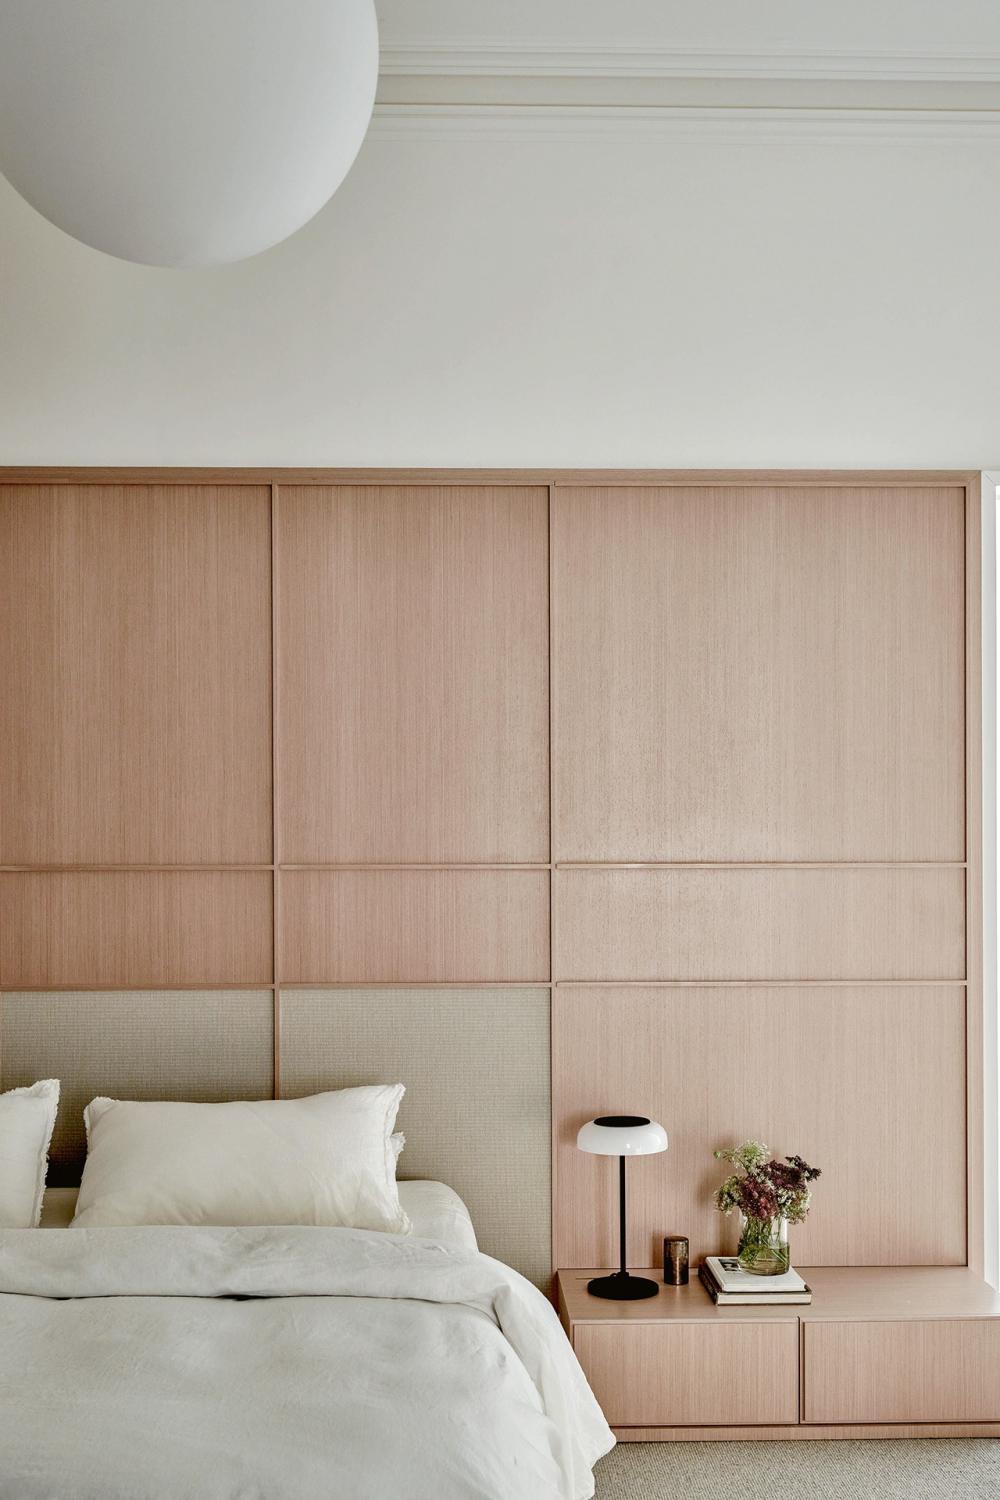 House tour: an elegant heritage Melbourne home restored with a moody colour palette-8.jpg